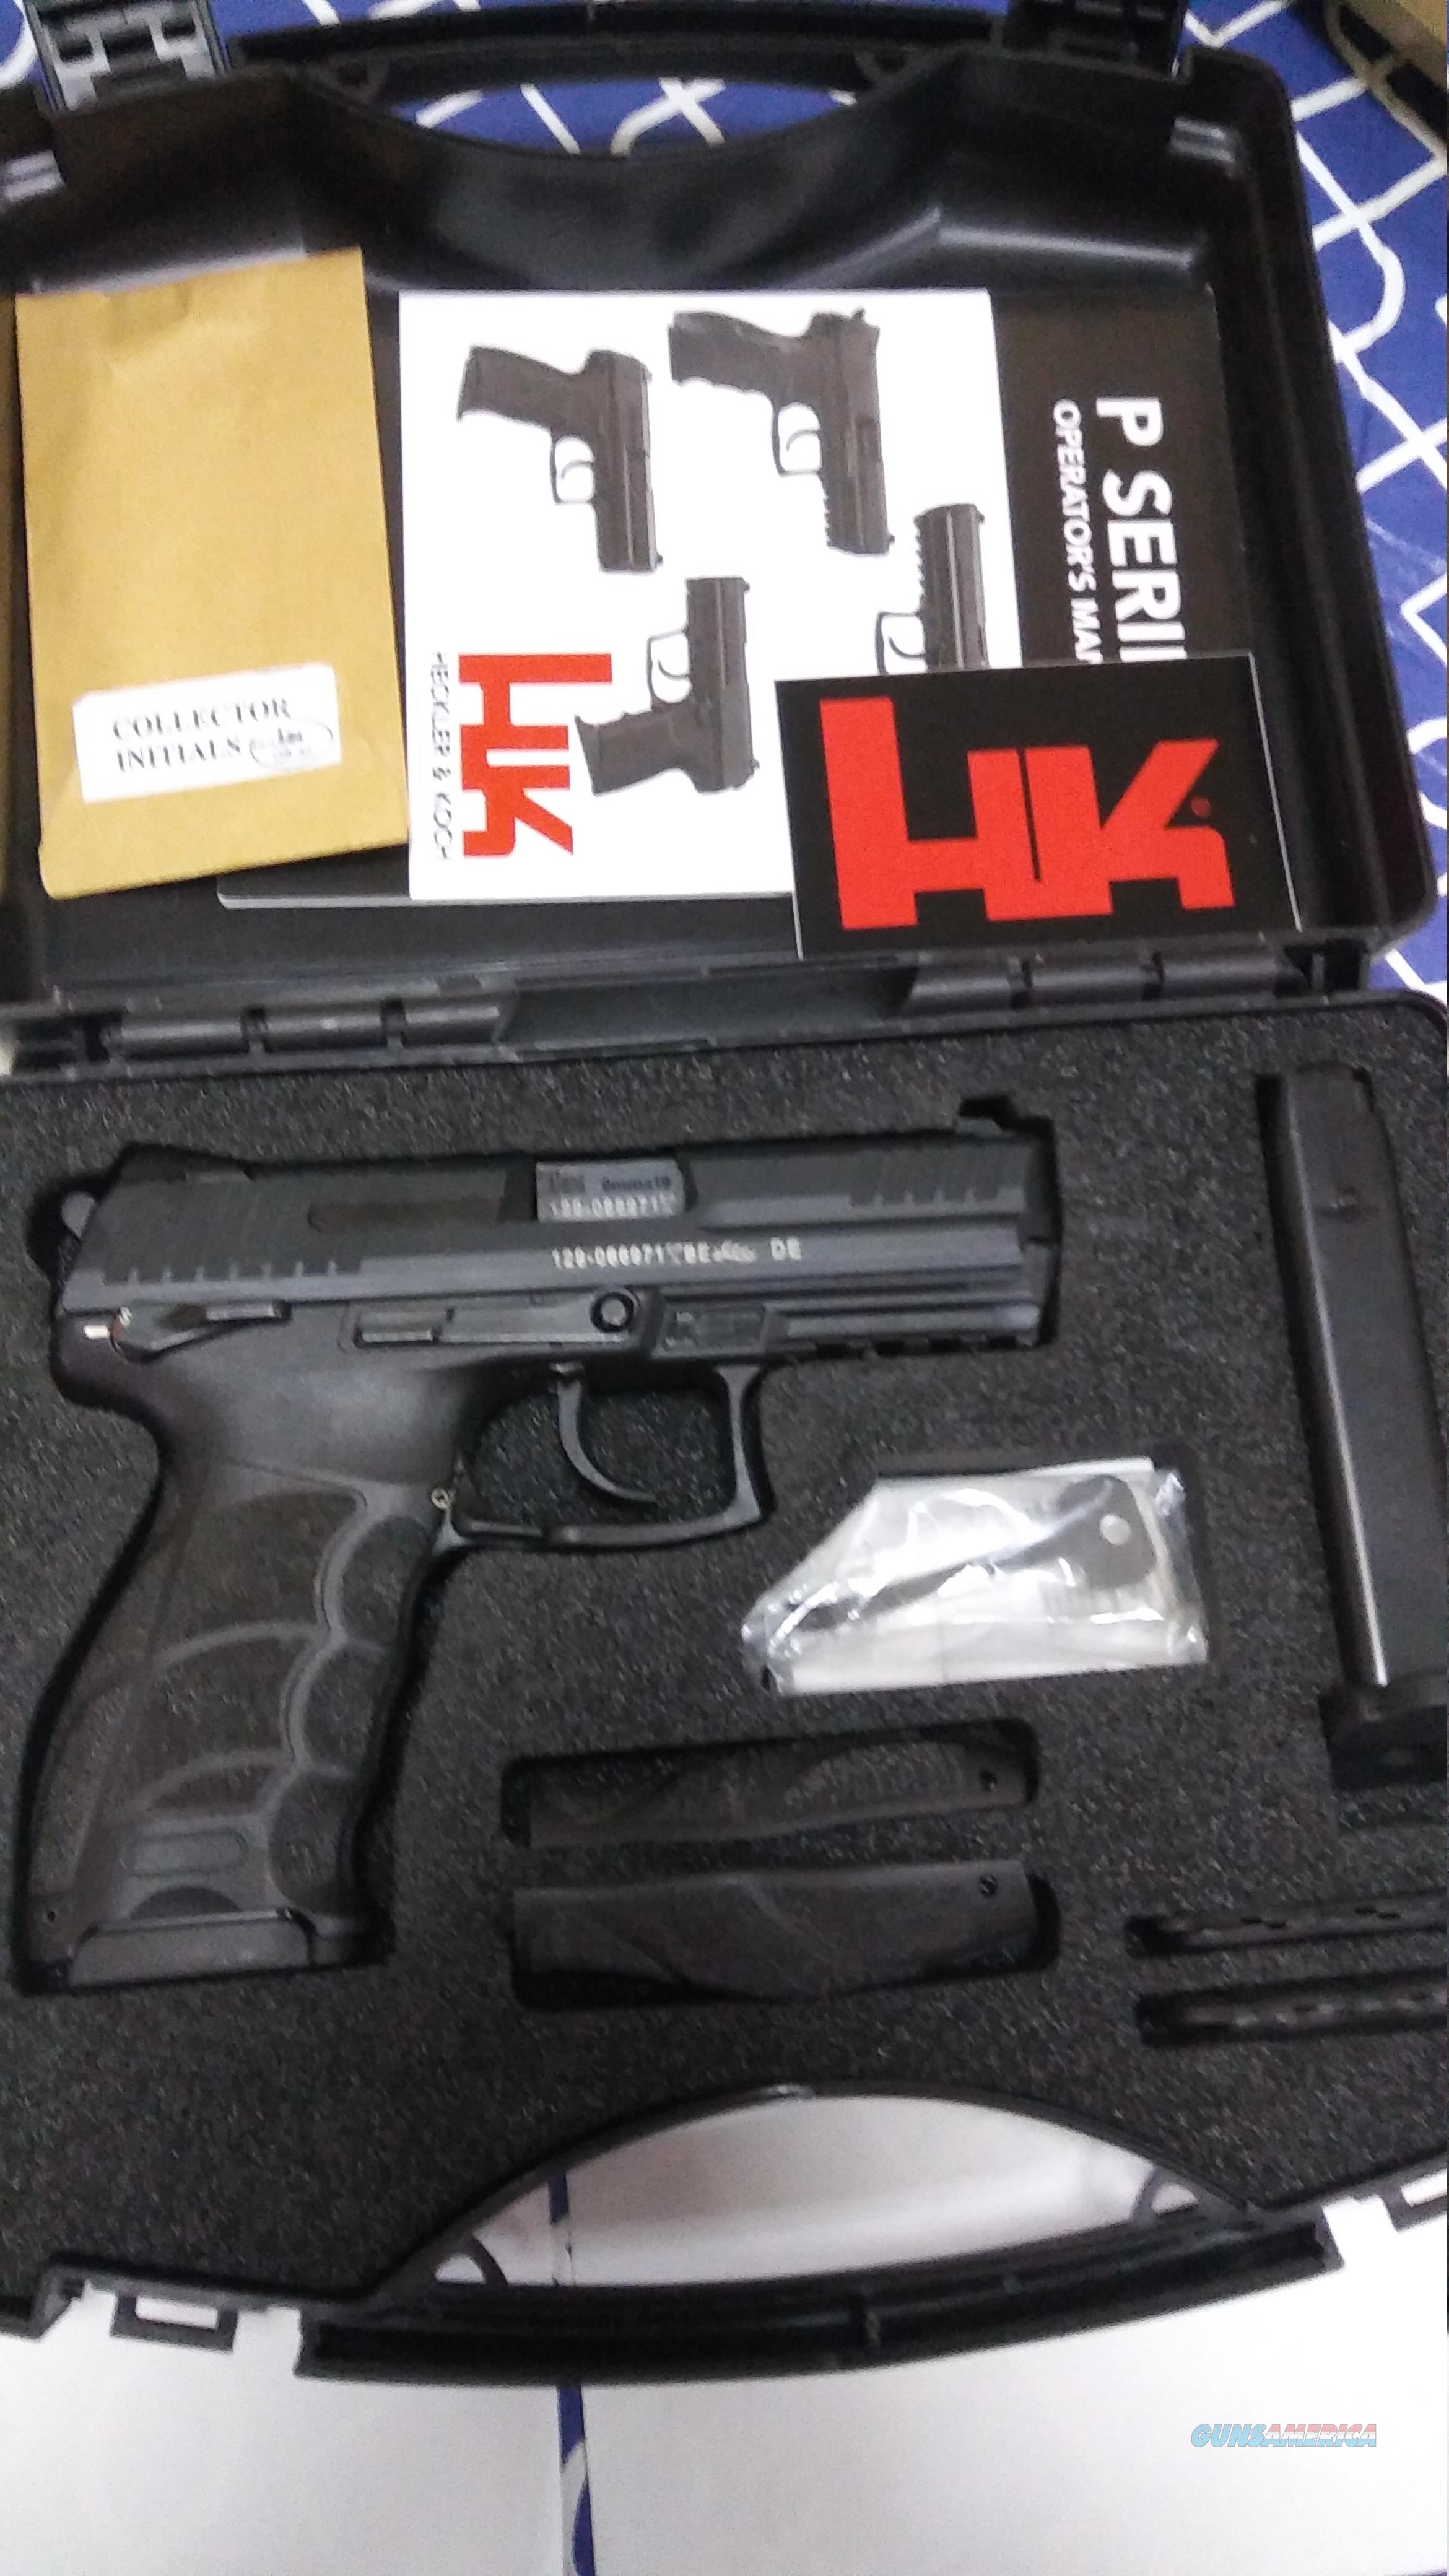 HK P 30 9 mm full size double action - single action night sites 2 mags all as new  Guns > Pistols > Heckler & Koch Pistols > Polymer Frame